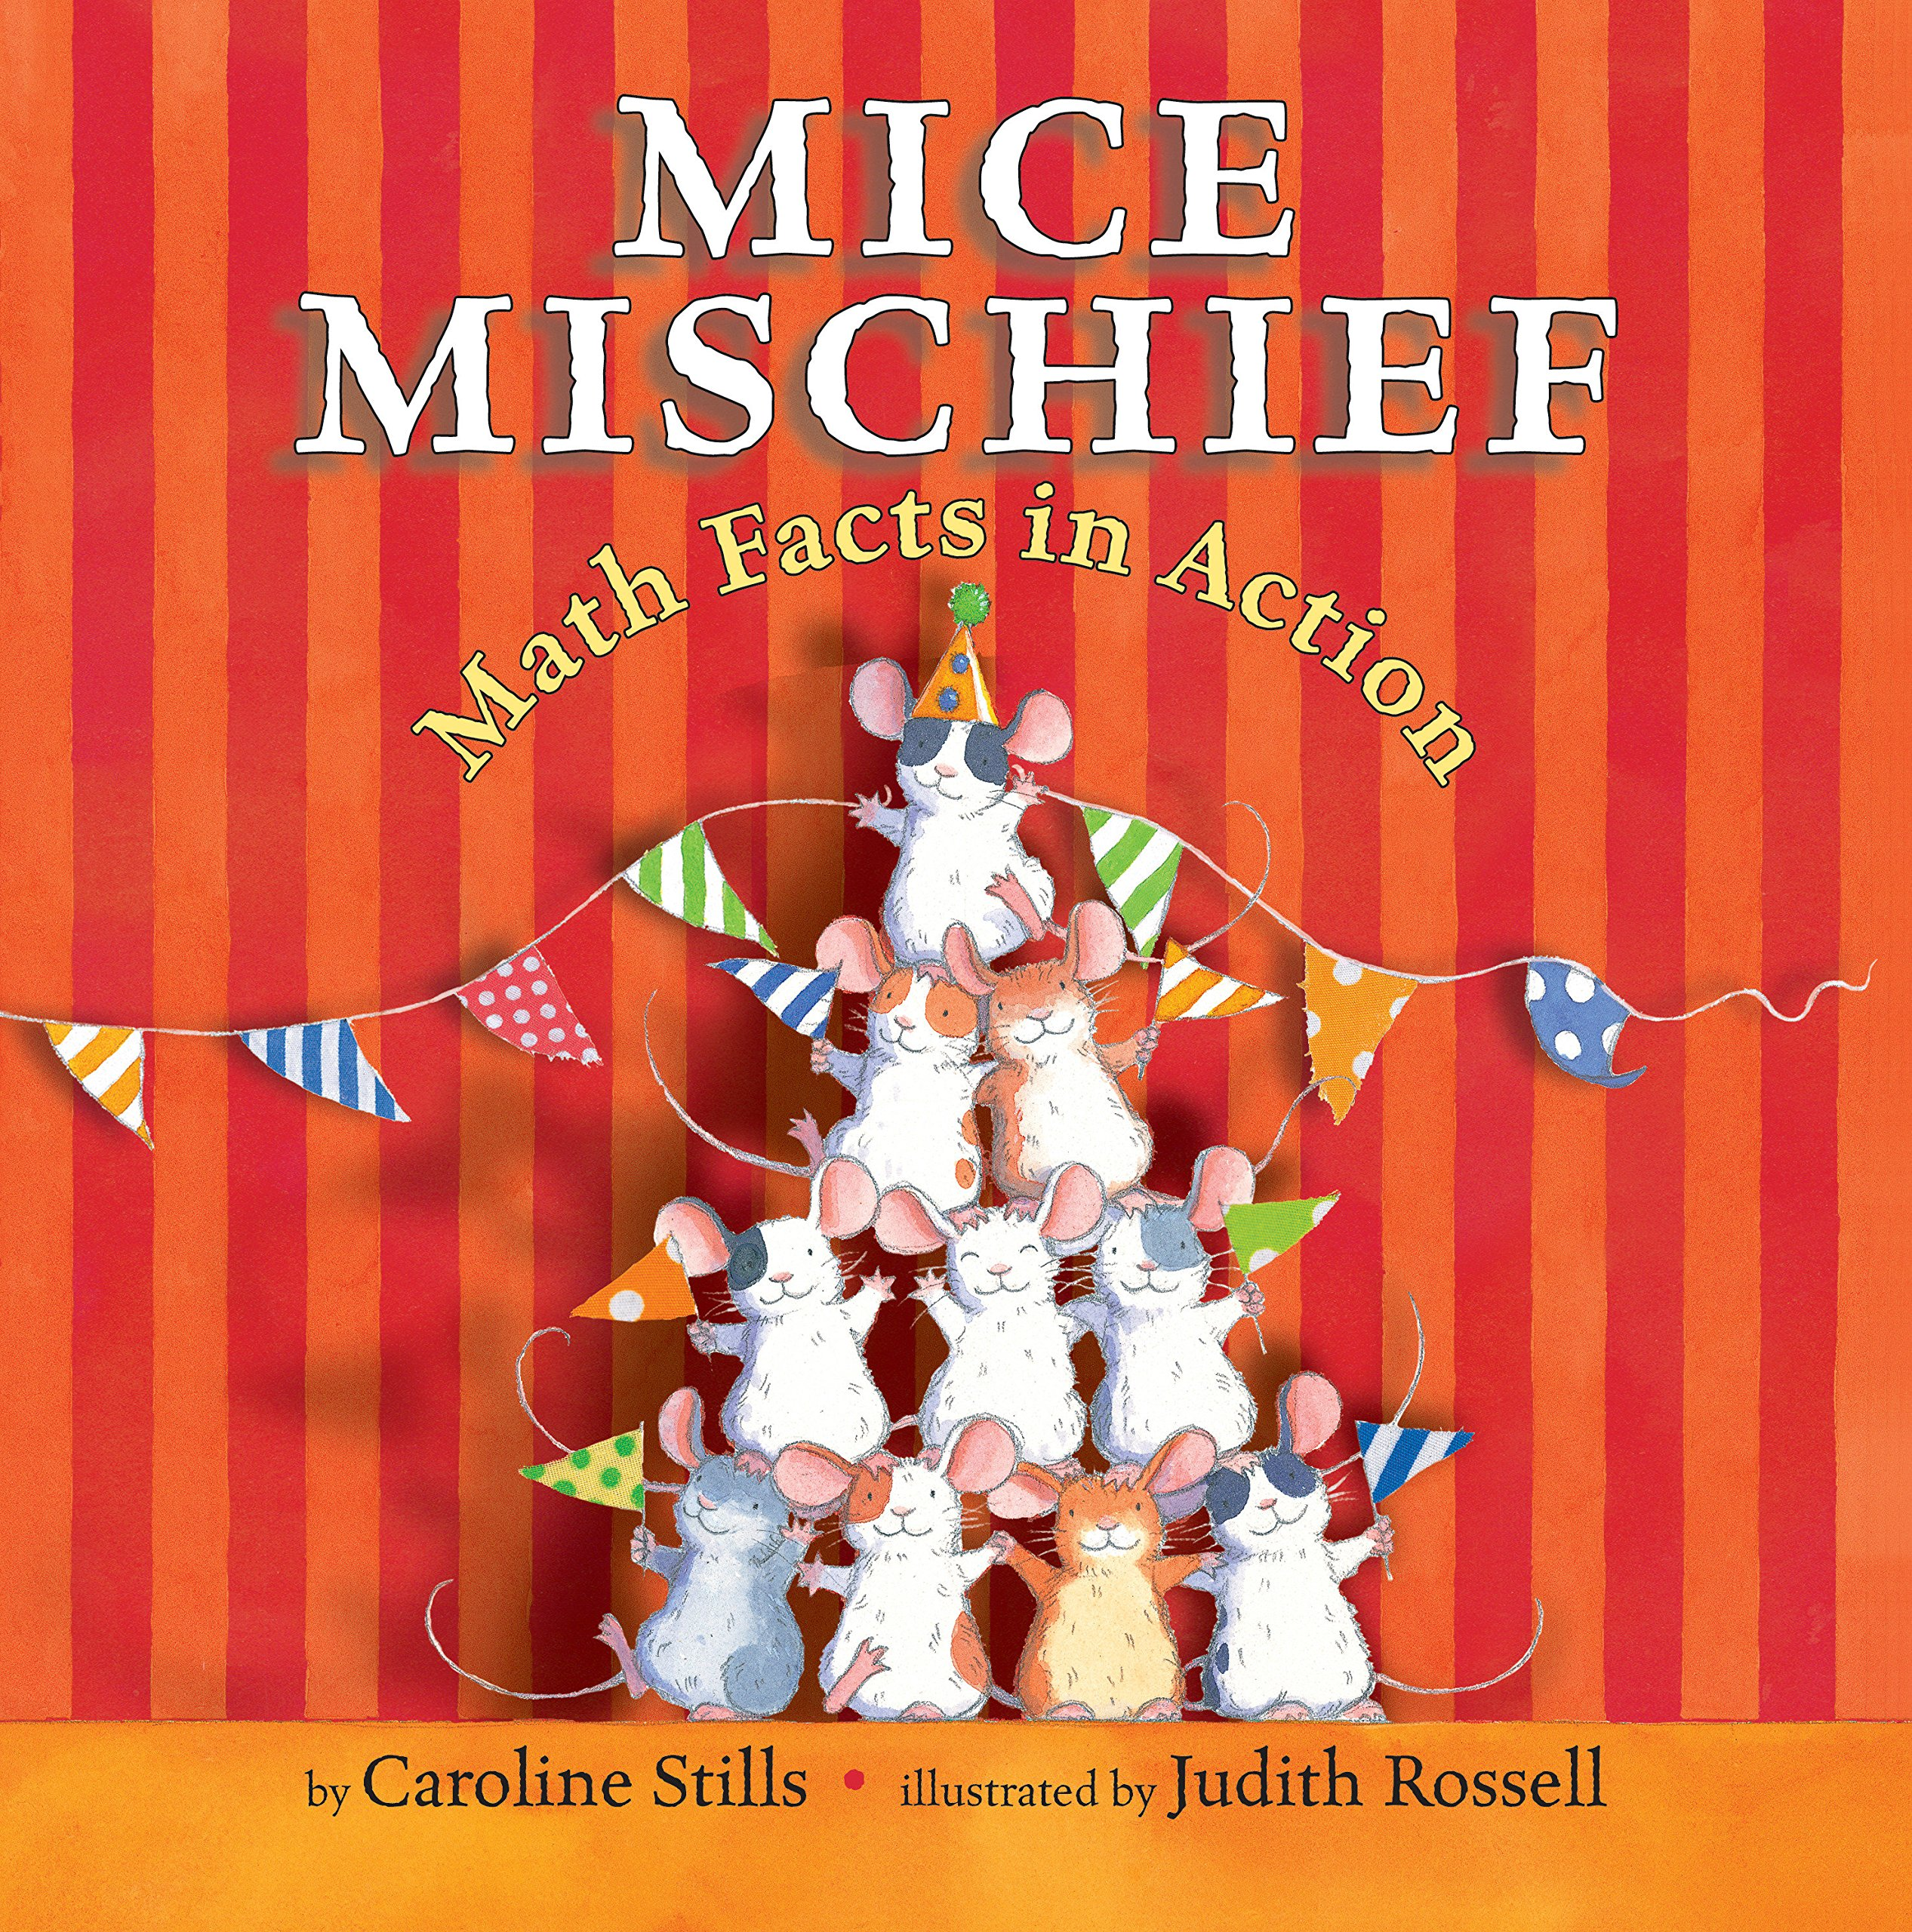 Mice Mischief: Math Facts in Action: Caroline Stills, Judith Rossell:  9780823429479: Amazon.com: Books